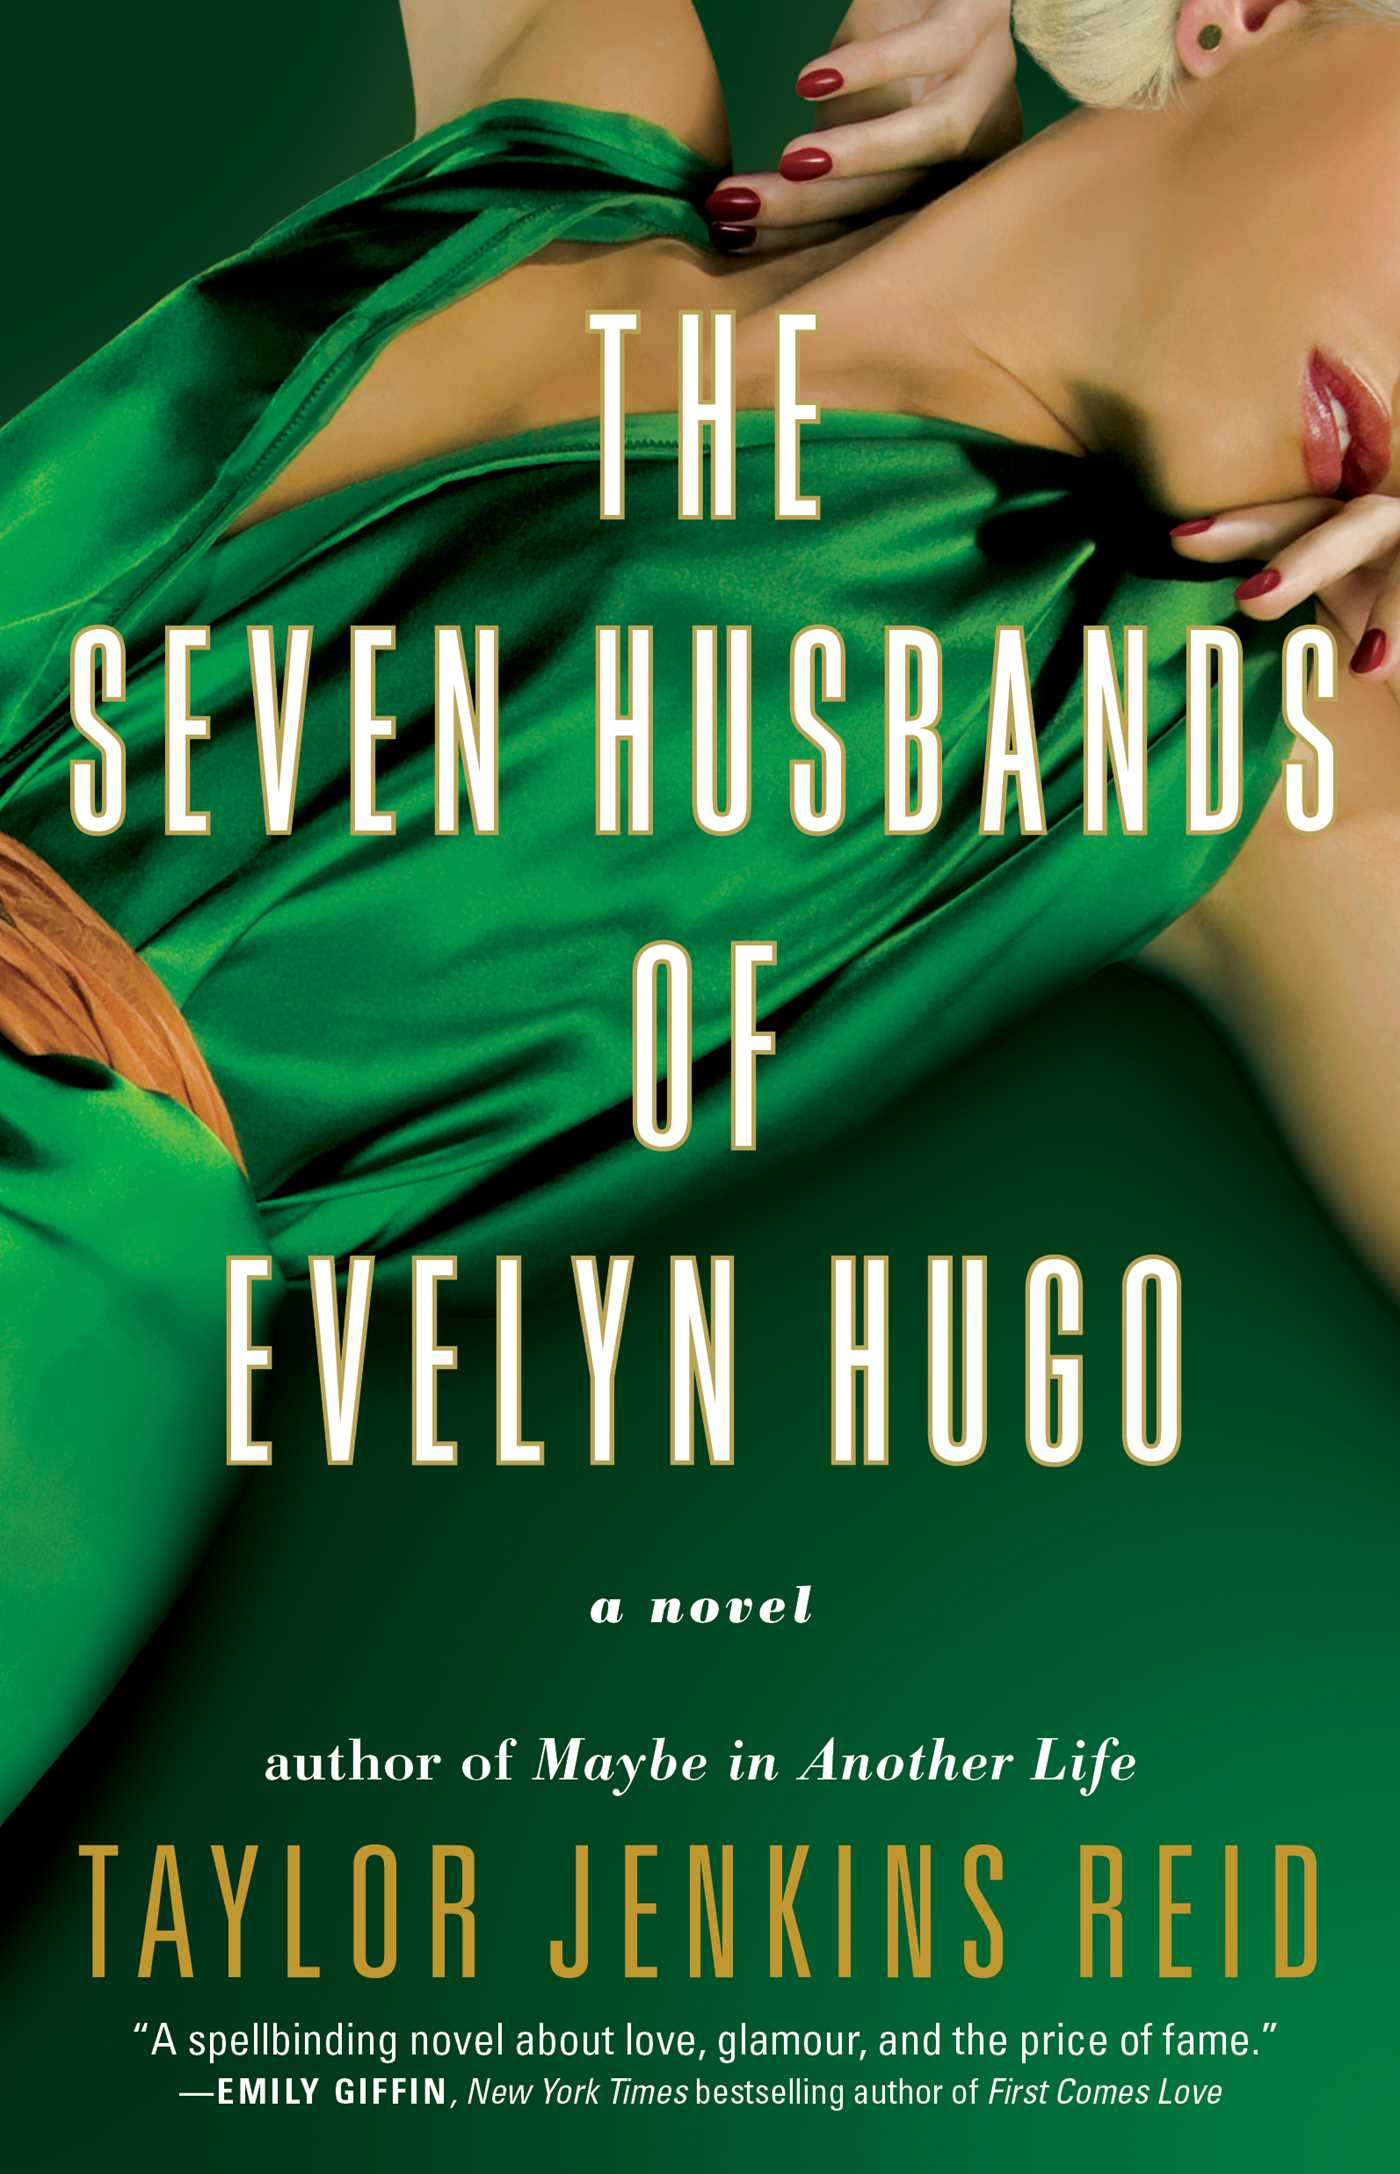 The seven husbands of evelyn hugo 9781501174827 hr